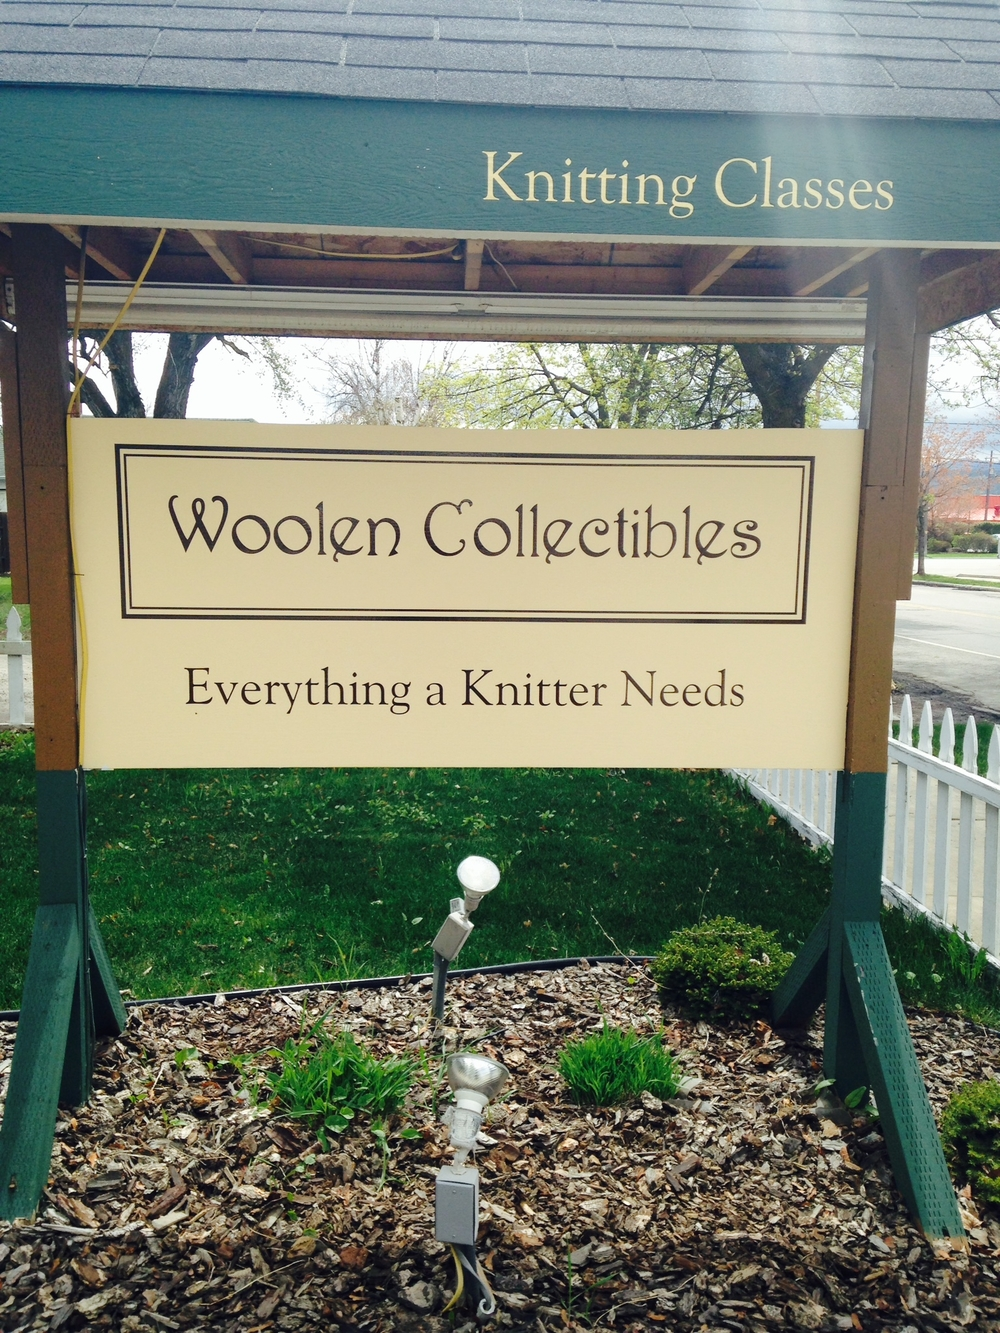 Woolen Collectibles